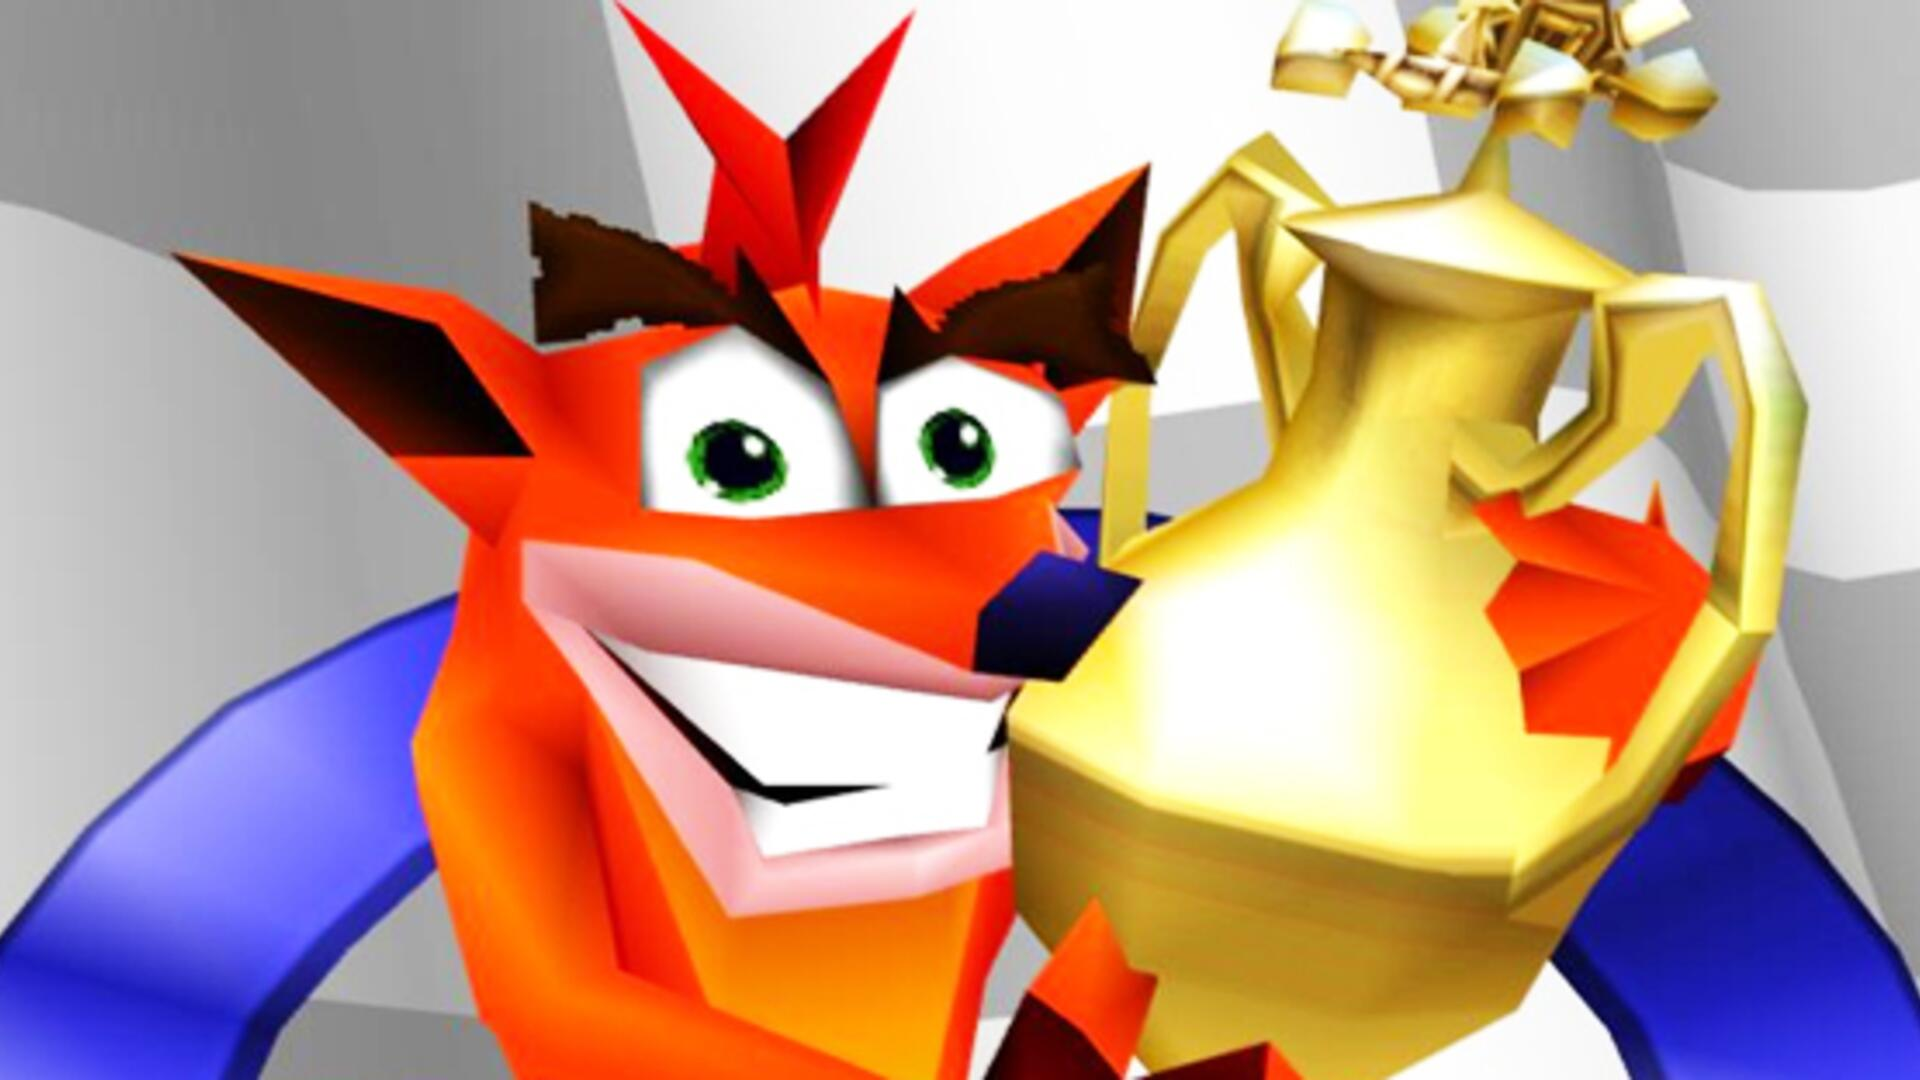 Crash Team Racing Remaster Set to Be Announced at The Game Awards [Update: Confirmed]